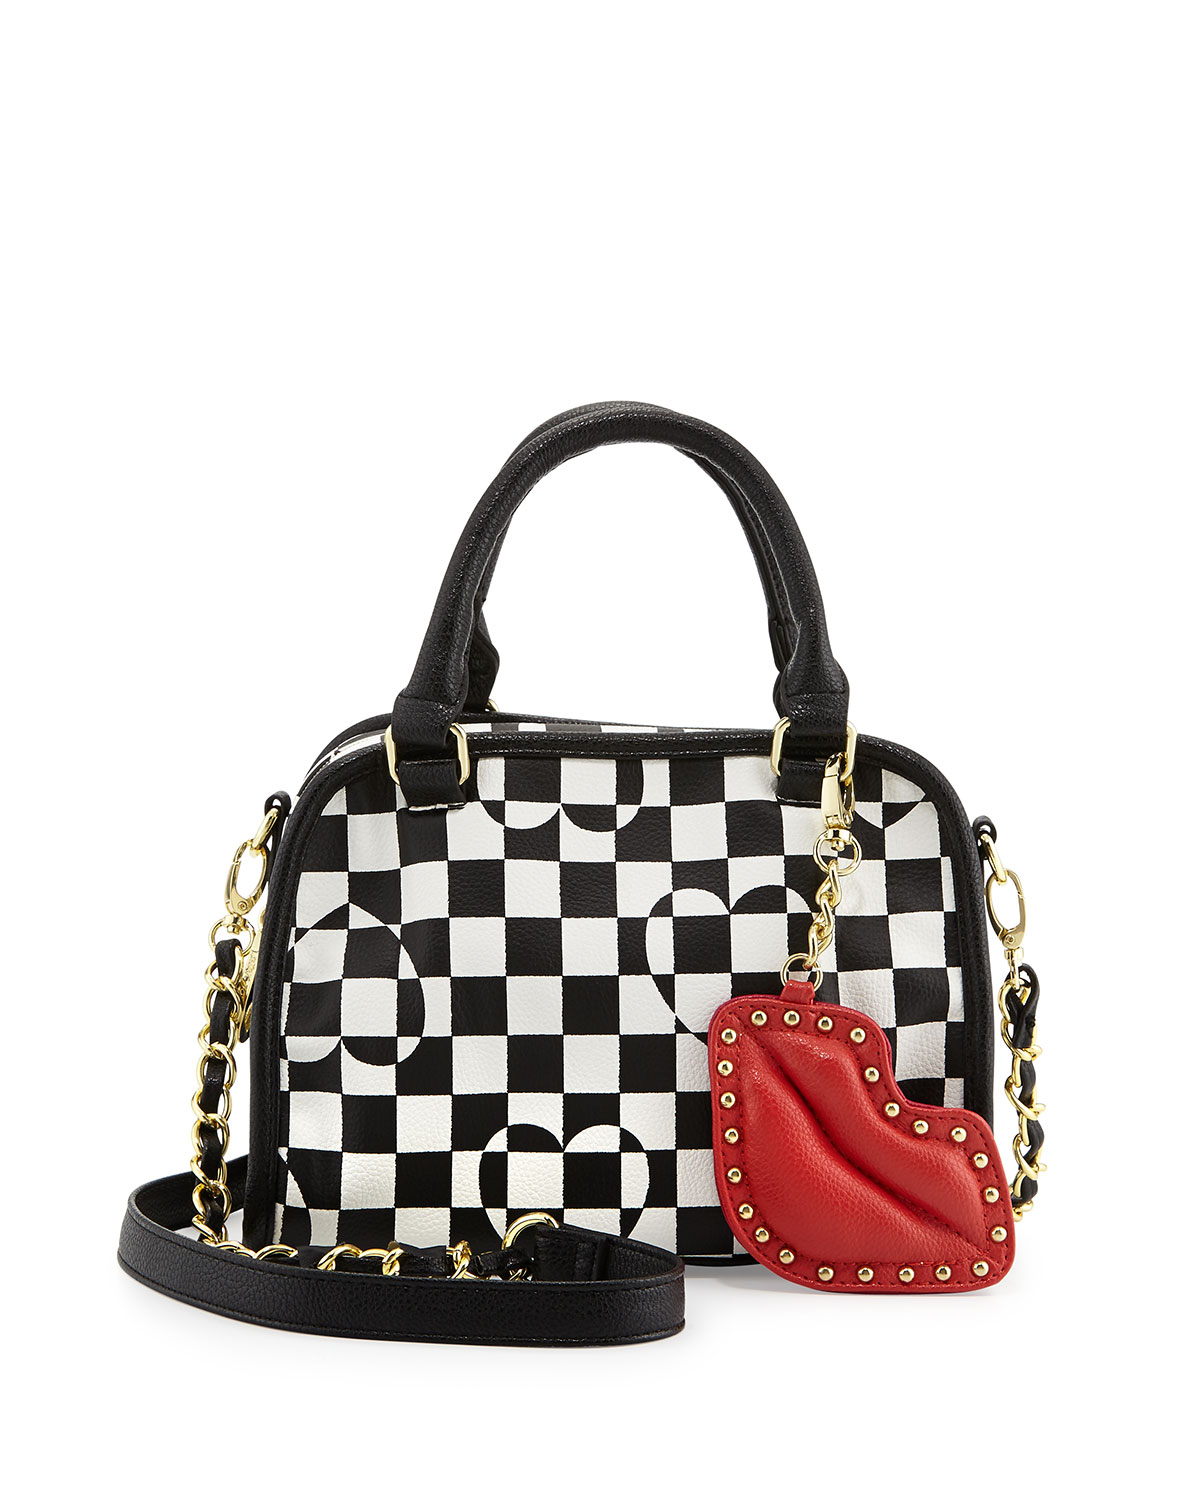 Betsey Johnson Pink Heart Checkerboard Satchel Bag Blackwhite Product Normal on Nine West Keychain